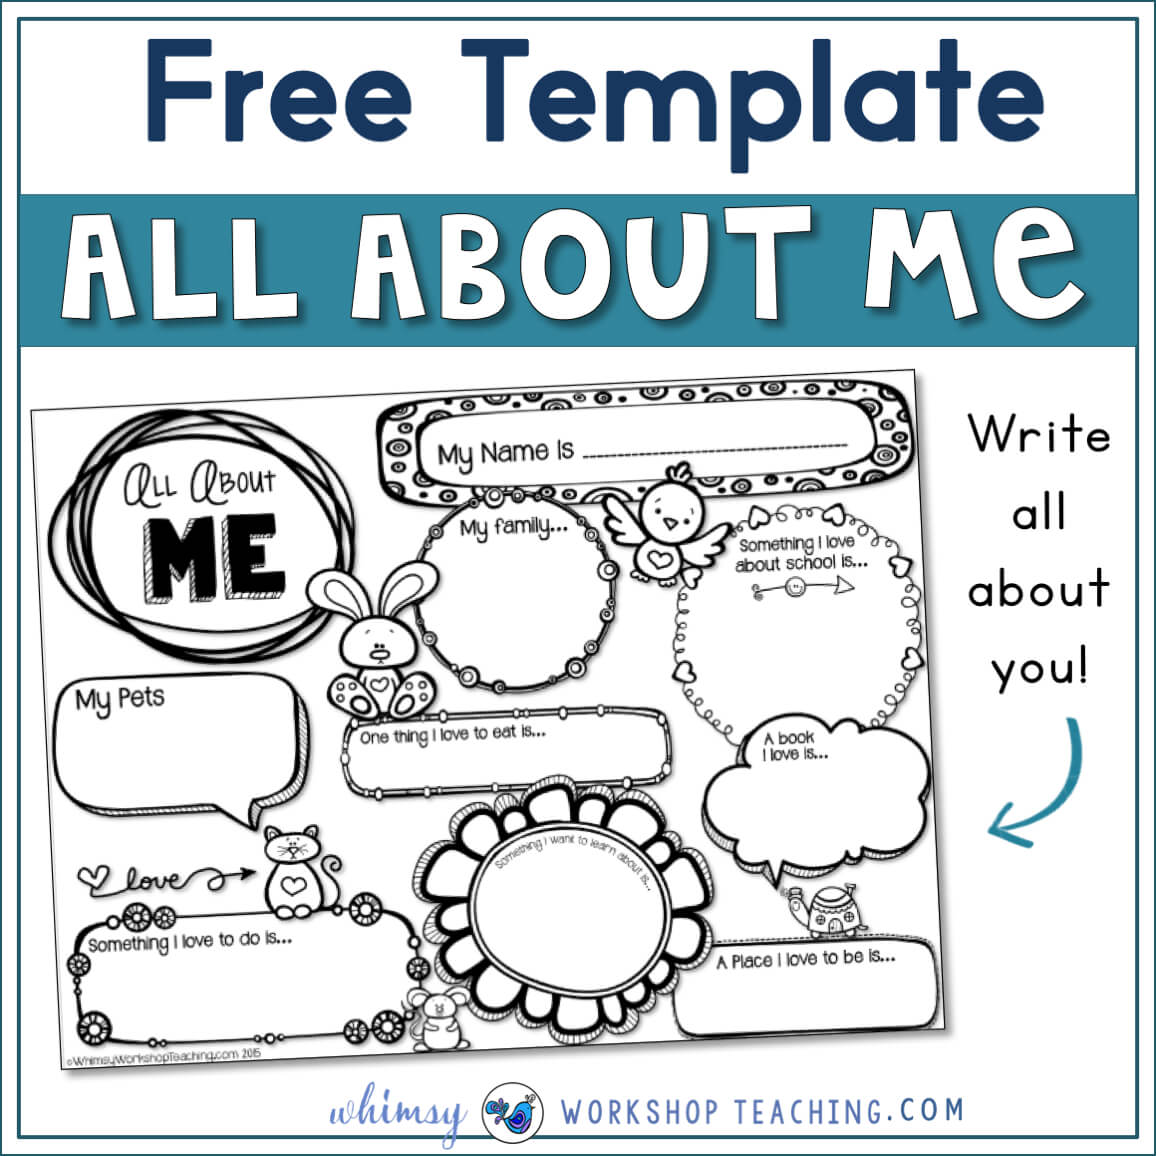 About Me Writing Template - Whimsy Workshop Teaching Throughout All About Me Book Template